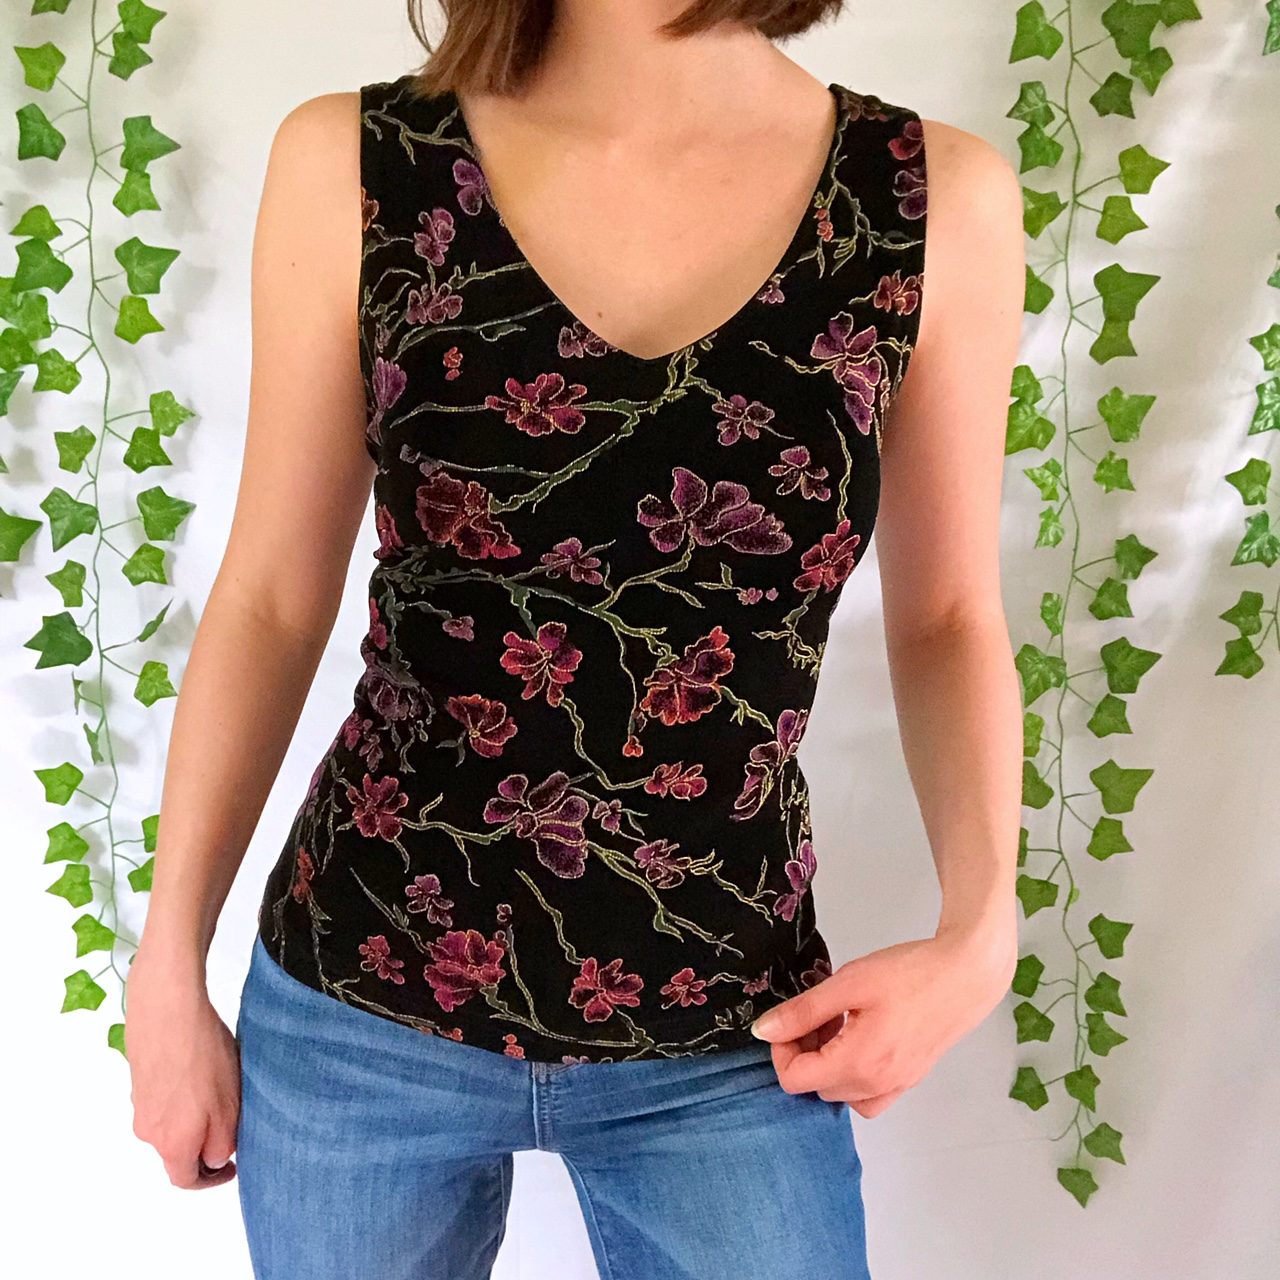 Product Image 1 - Vintage 80s or 90s tank